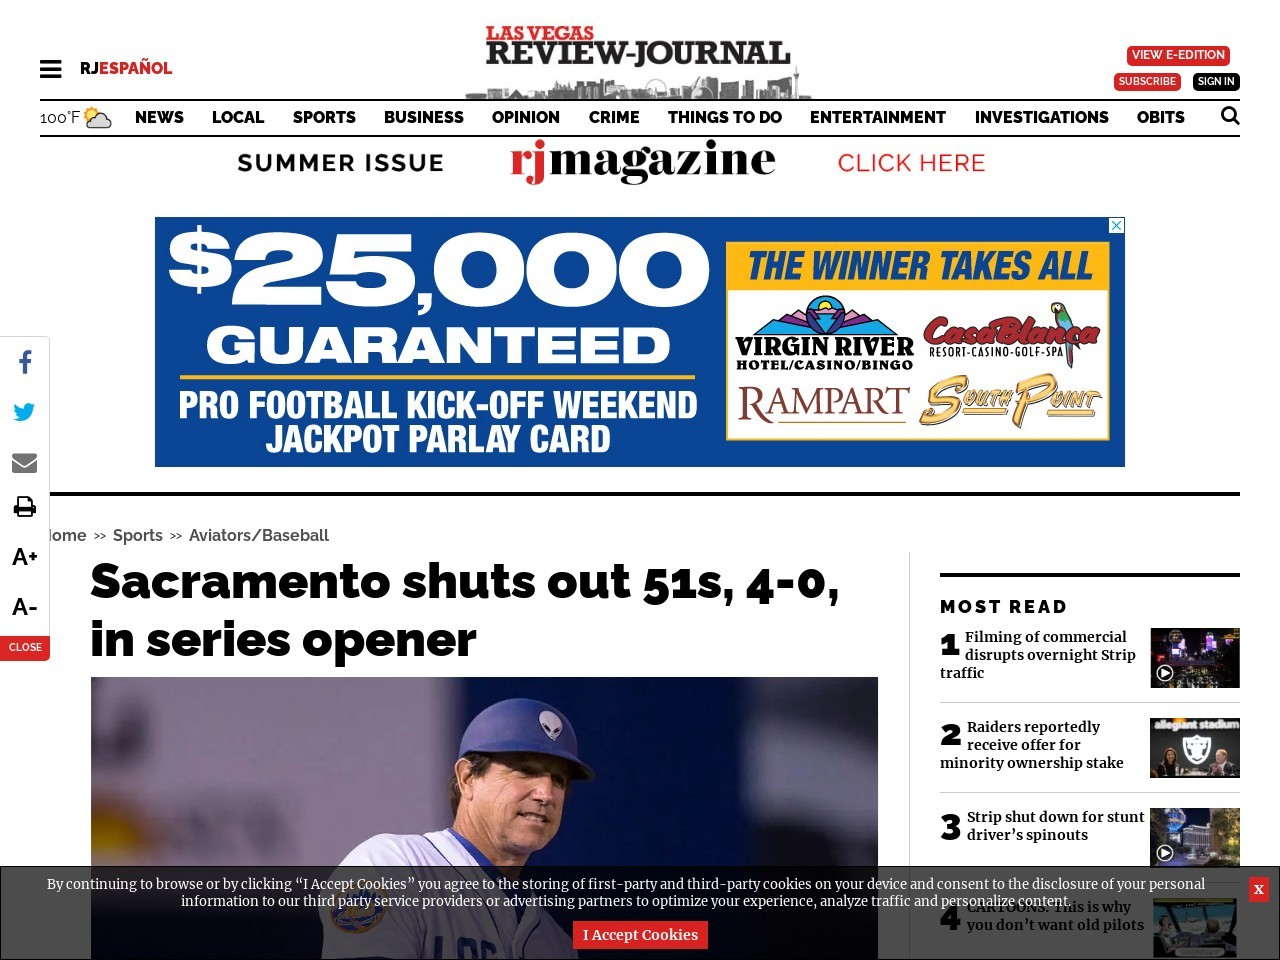 Sacramento shuts out 51s, 4-0, in series opener